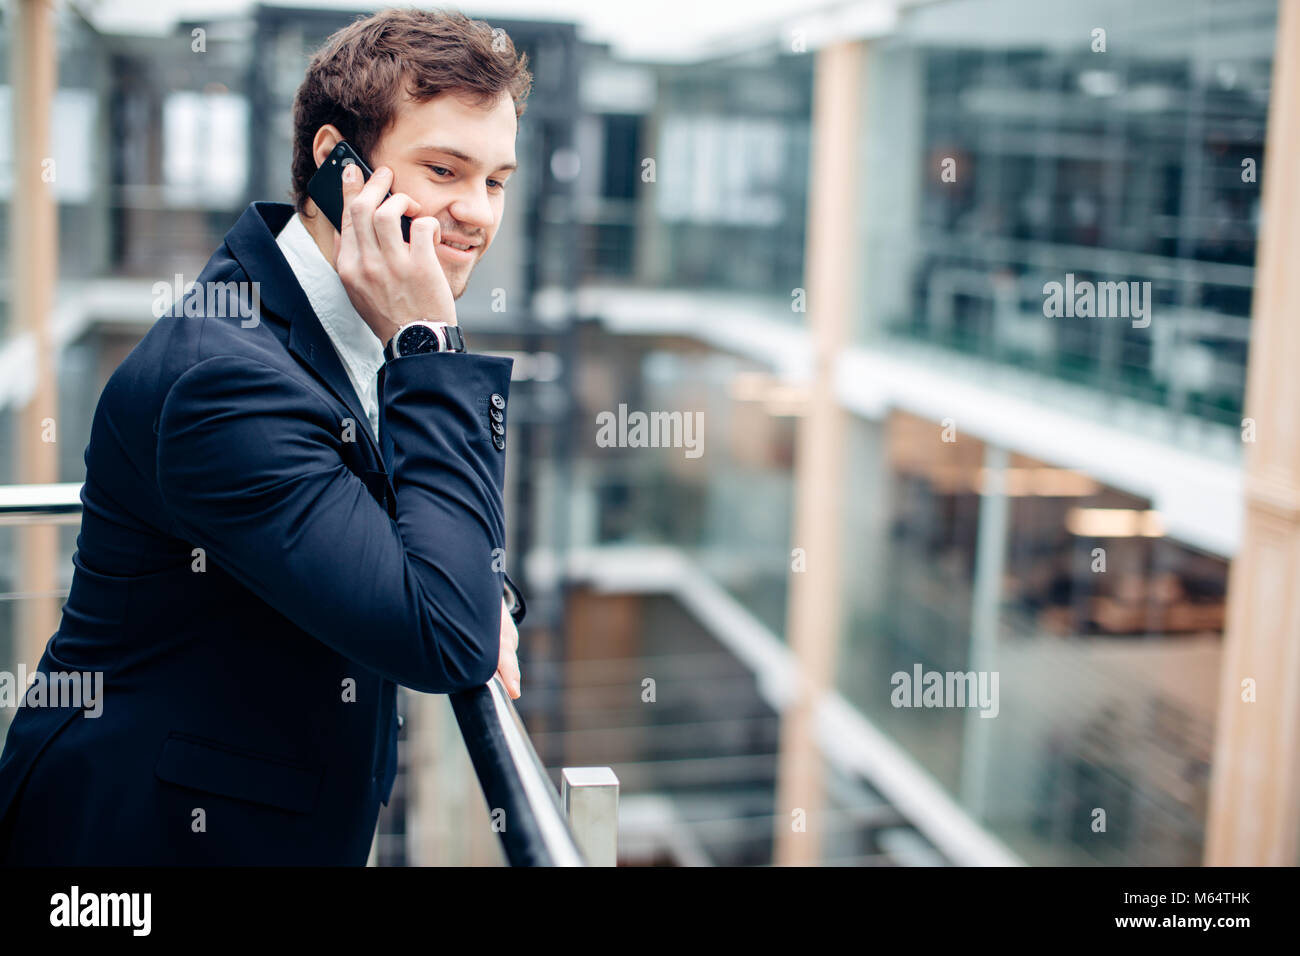 Business man walking while talking on mobile phone on his way to work - Stock Image